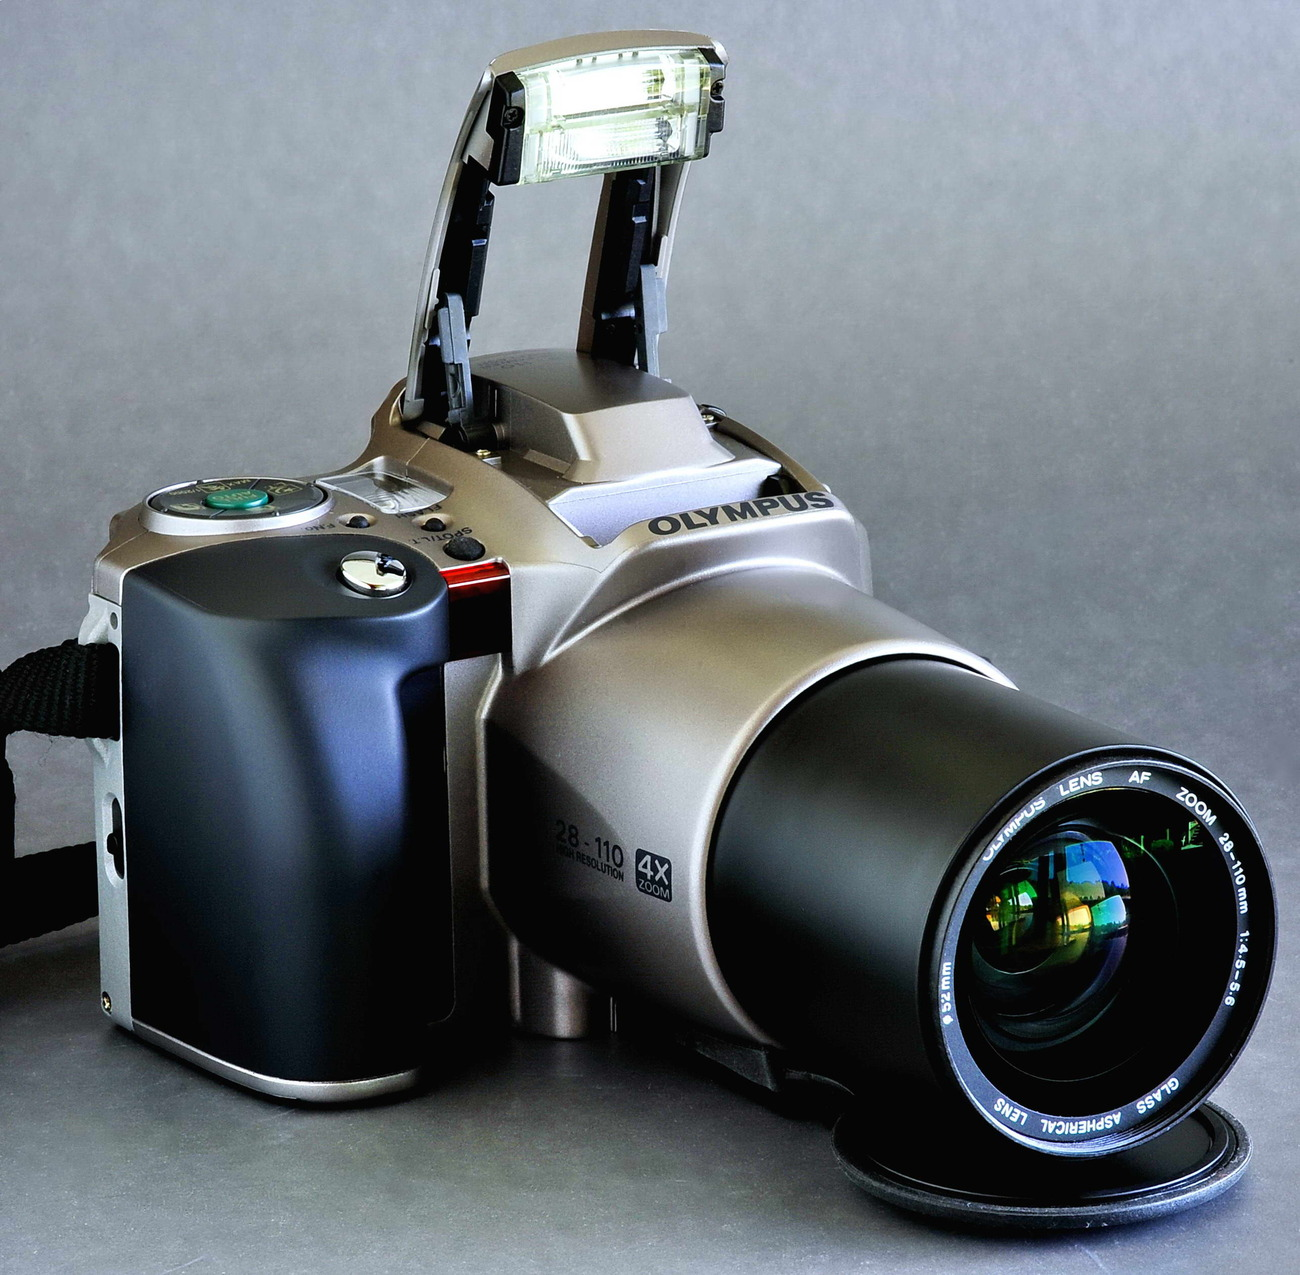 Olympus is 20 w 28 110 f4.5 5.6 aspherical flash up.small file